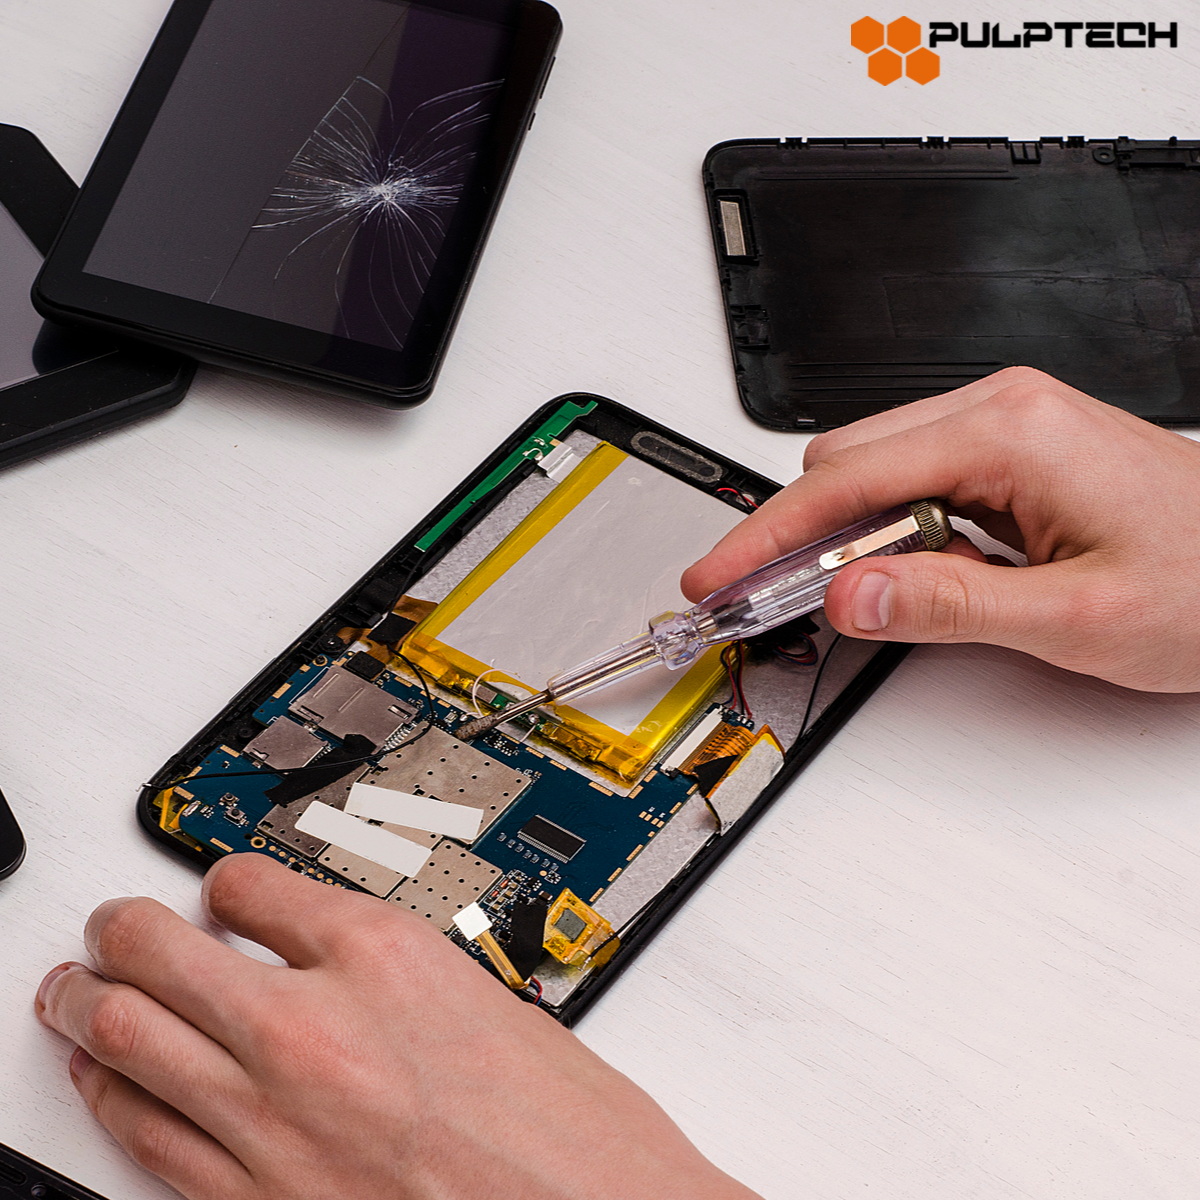 Professional iPhone & Android repair services. Contact us